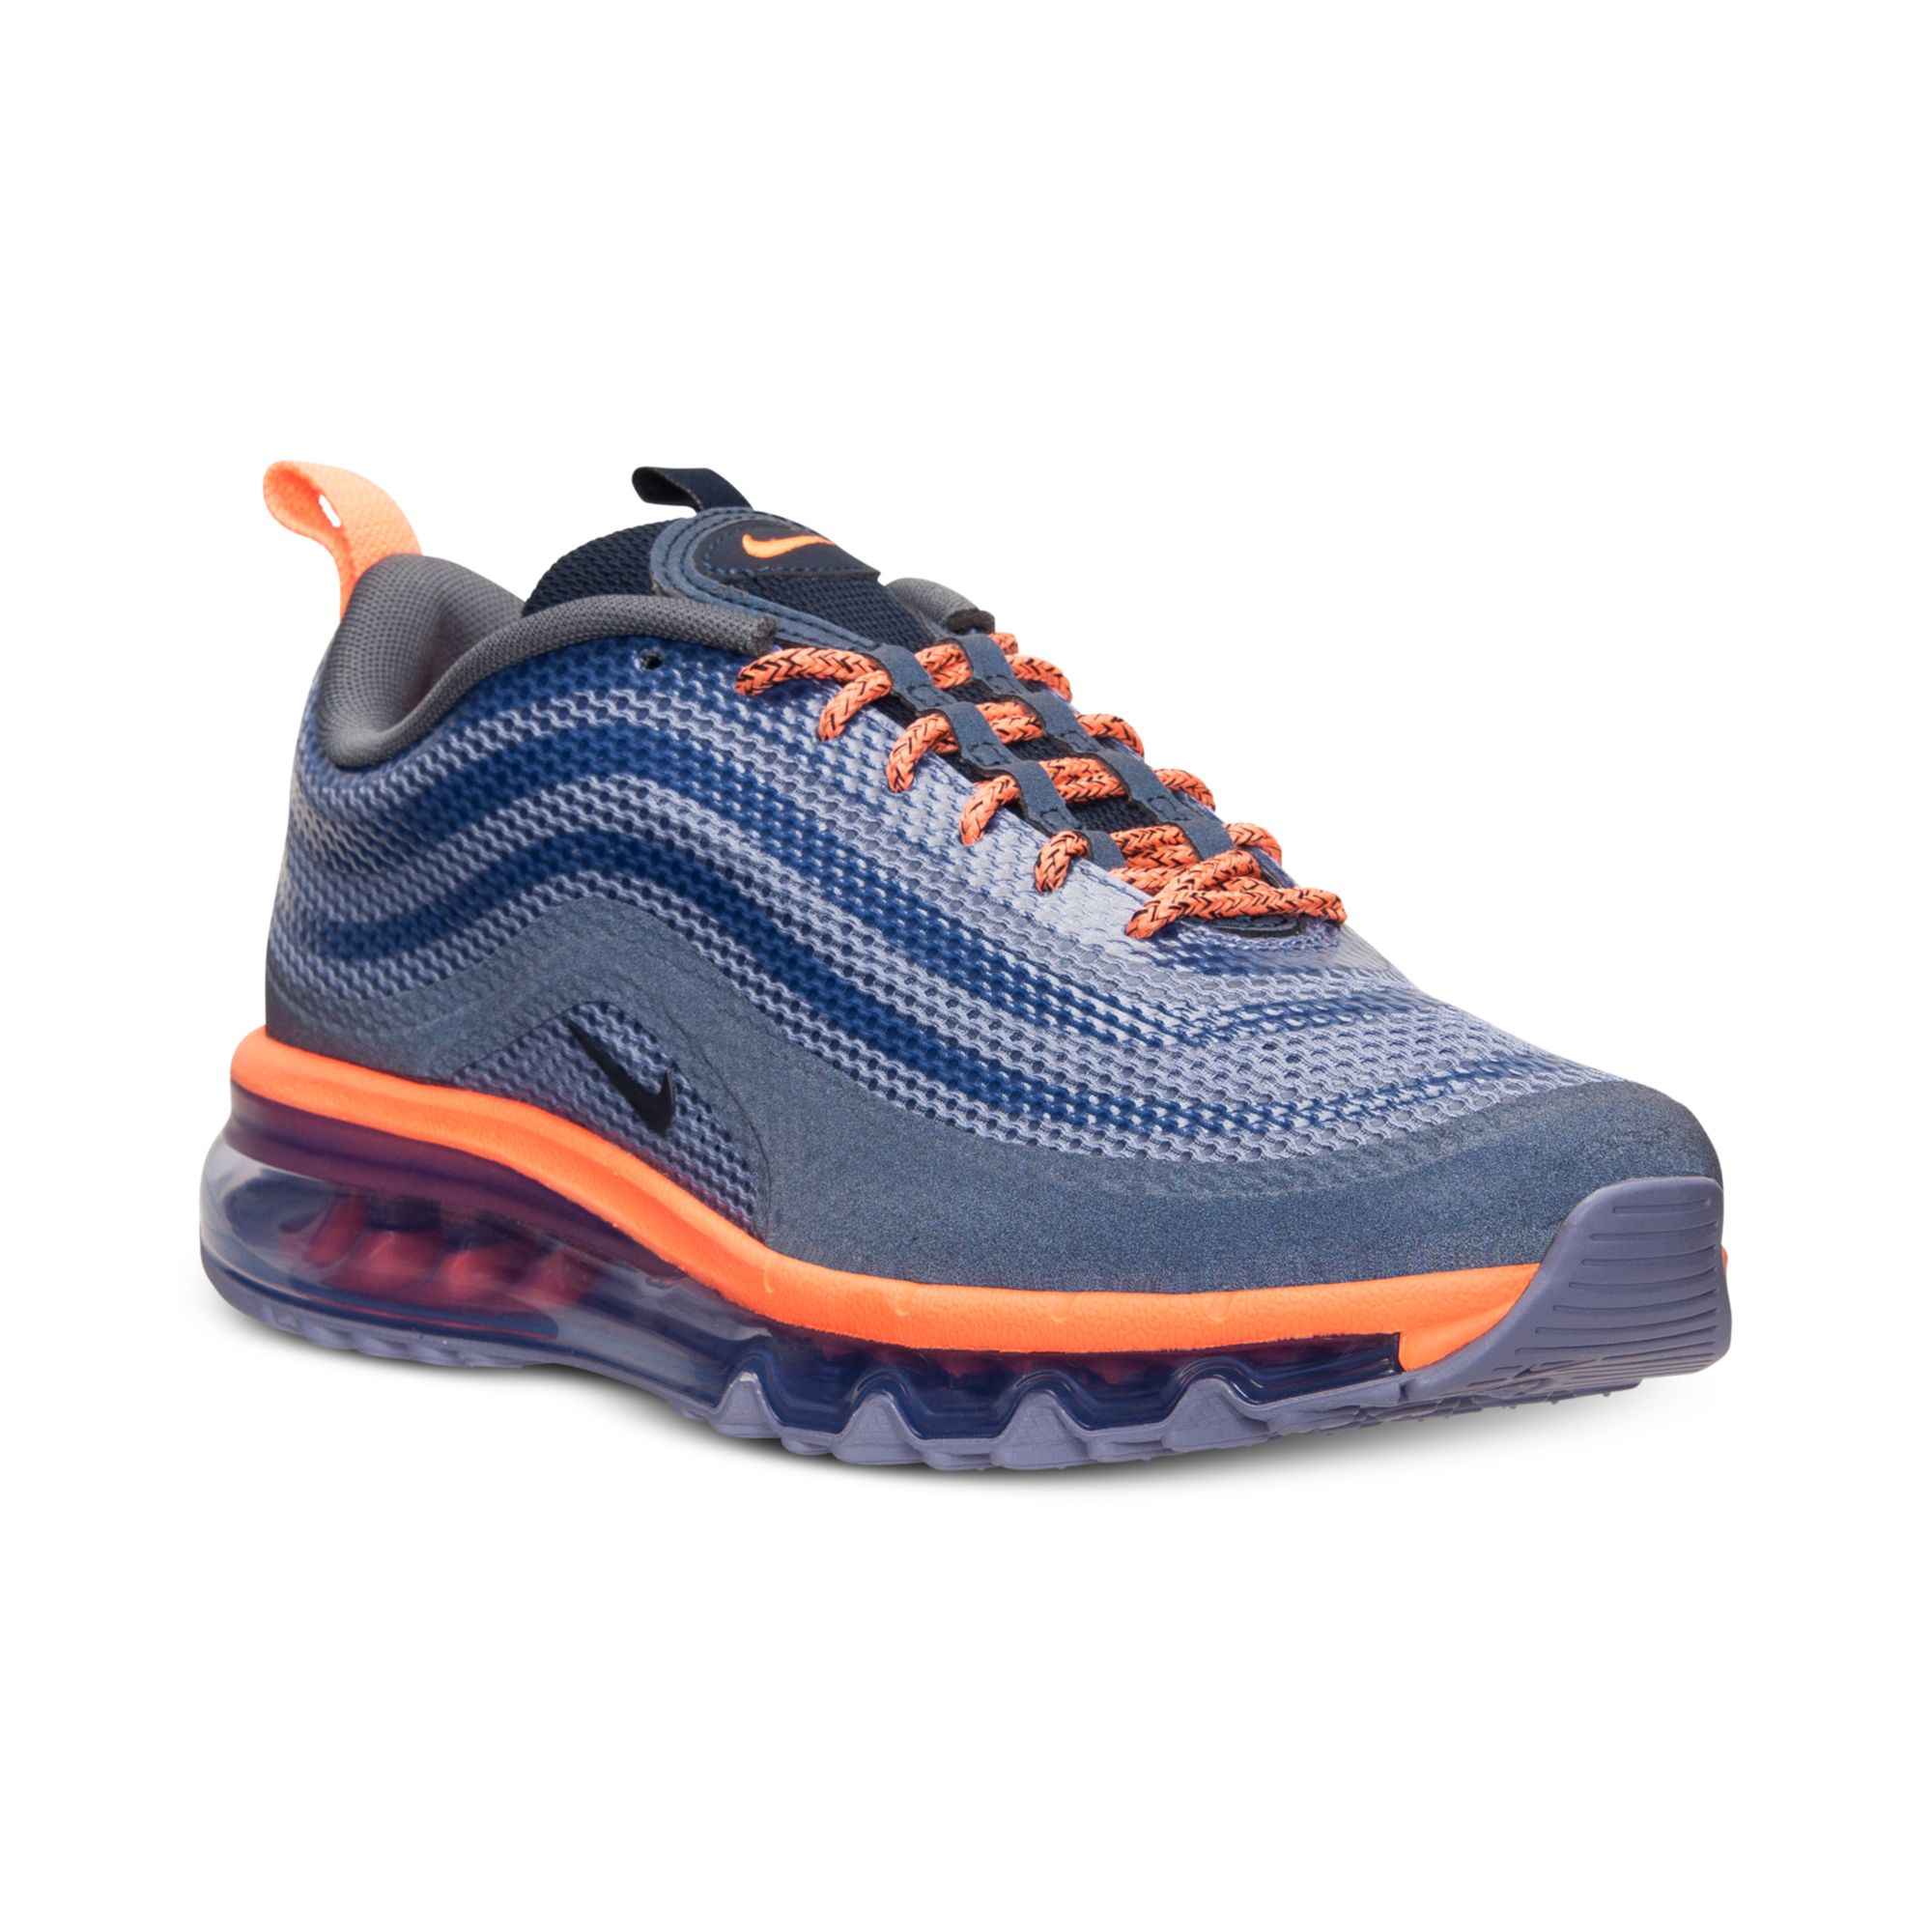 ... clearance lyst nike mens air max 97 hyp running sneakers from finish  line in ab71d 805e0 ... 34e71d126